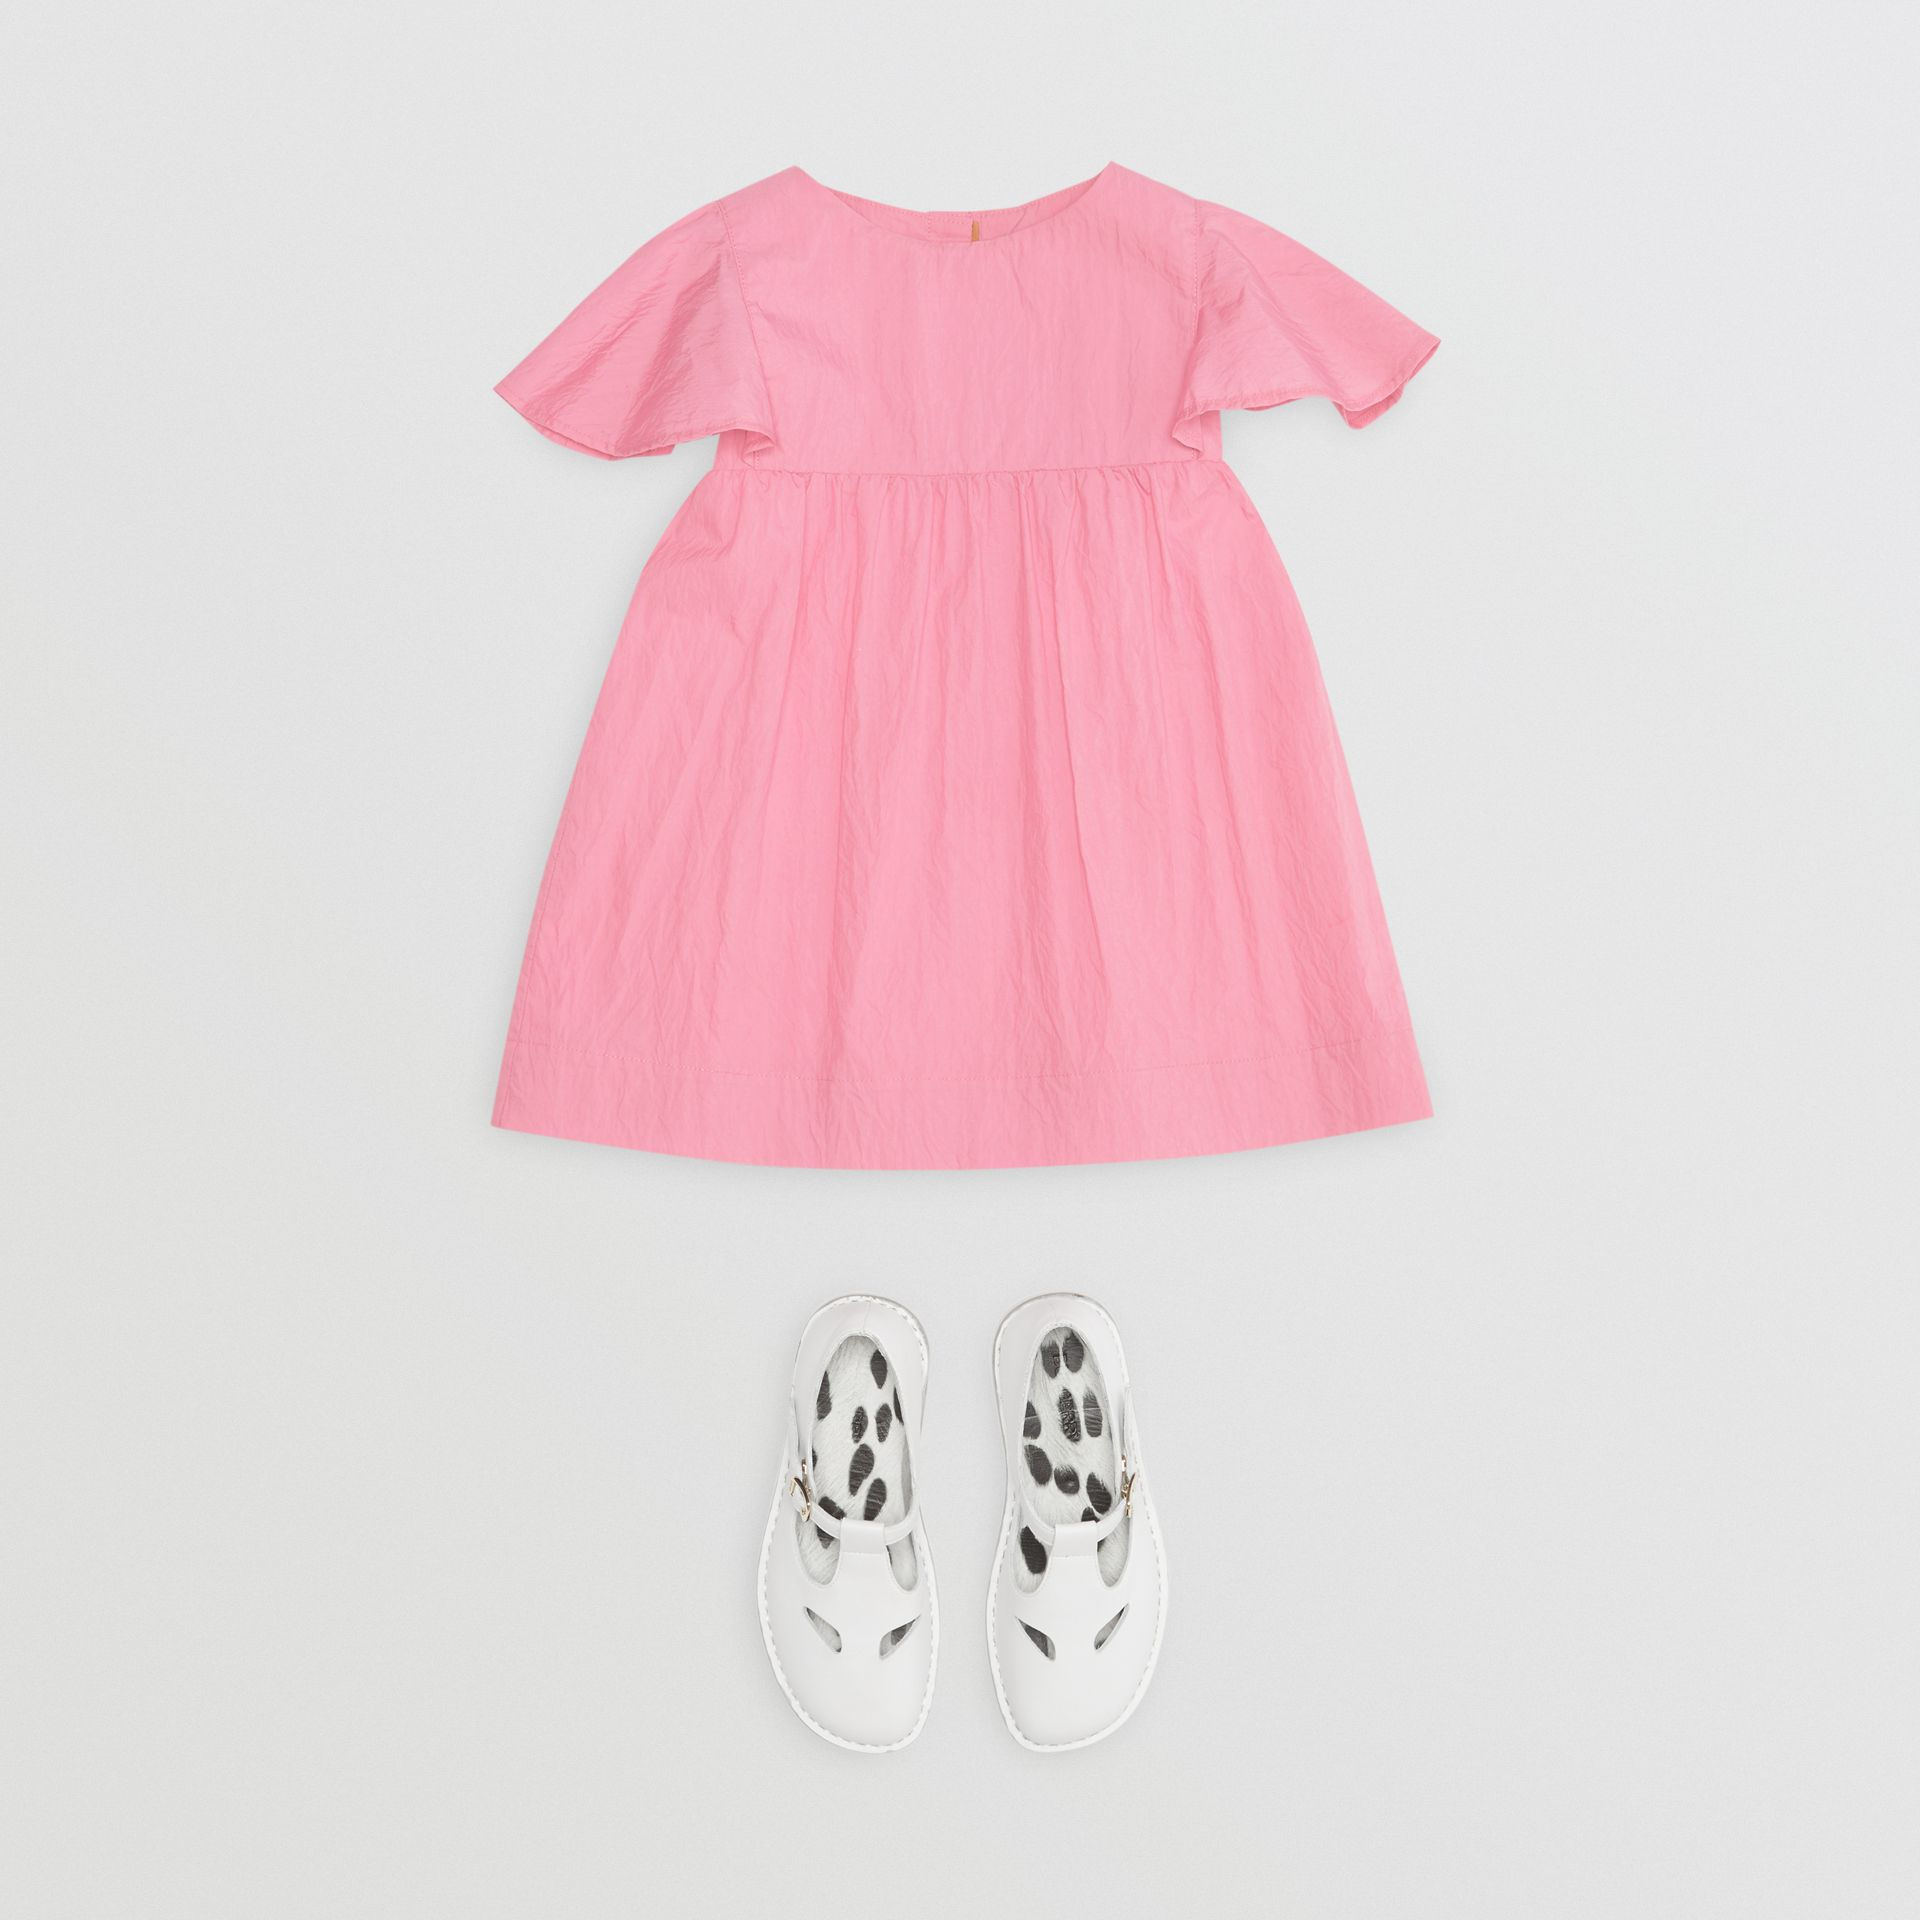 Ruffled Detail Crinkled Cotton Blend Dress in Bright Rose - Children | Burberry - gallery image 2